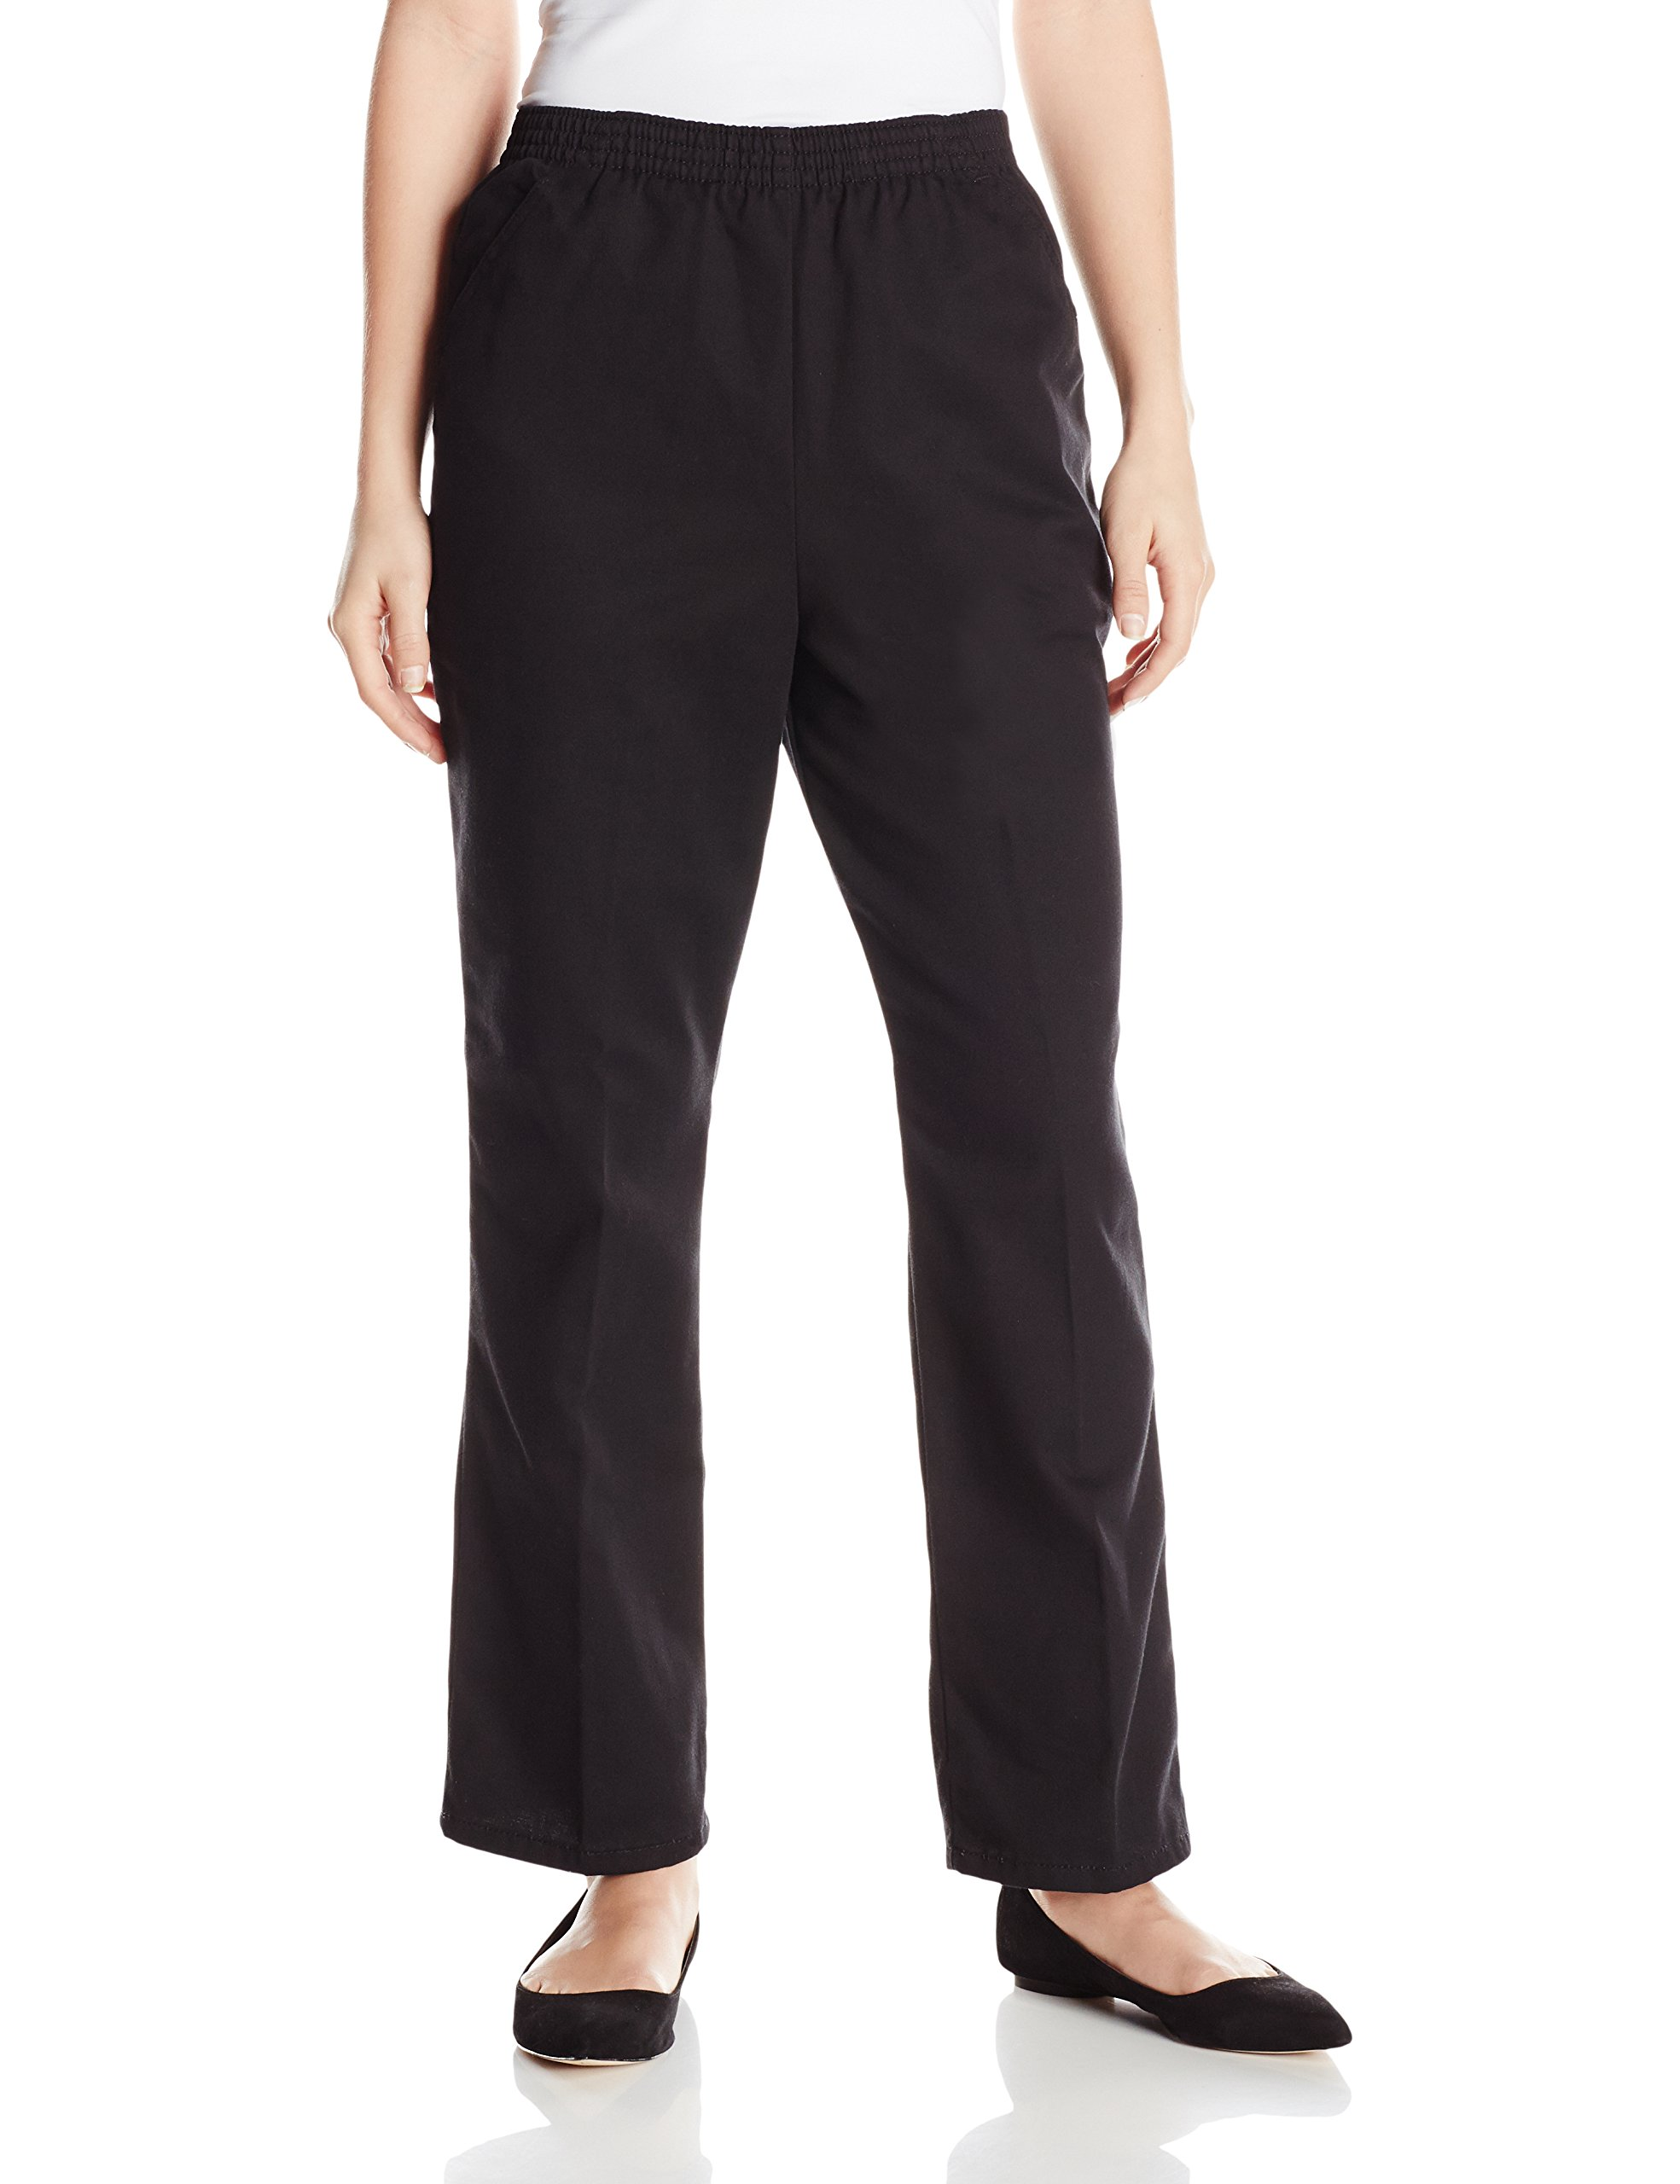 Chic Classic Collection Women's Petite Cotton Pull-On Pant with Elastic Waist, Black Twill 14P